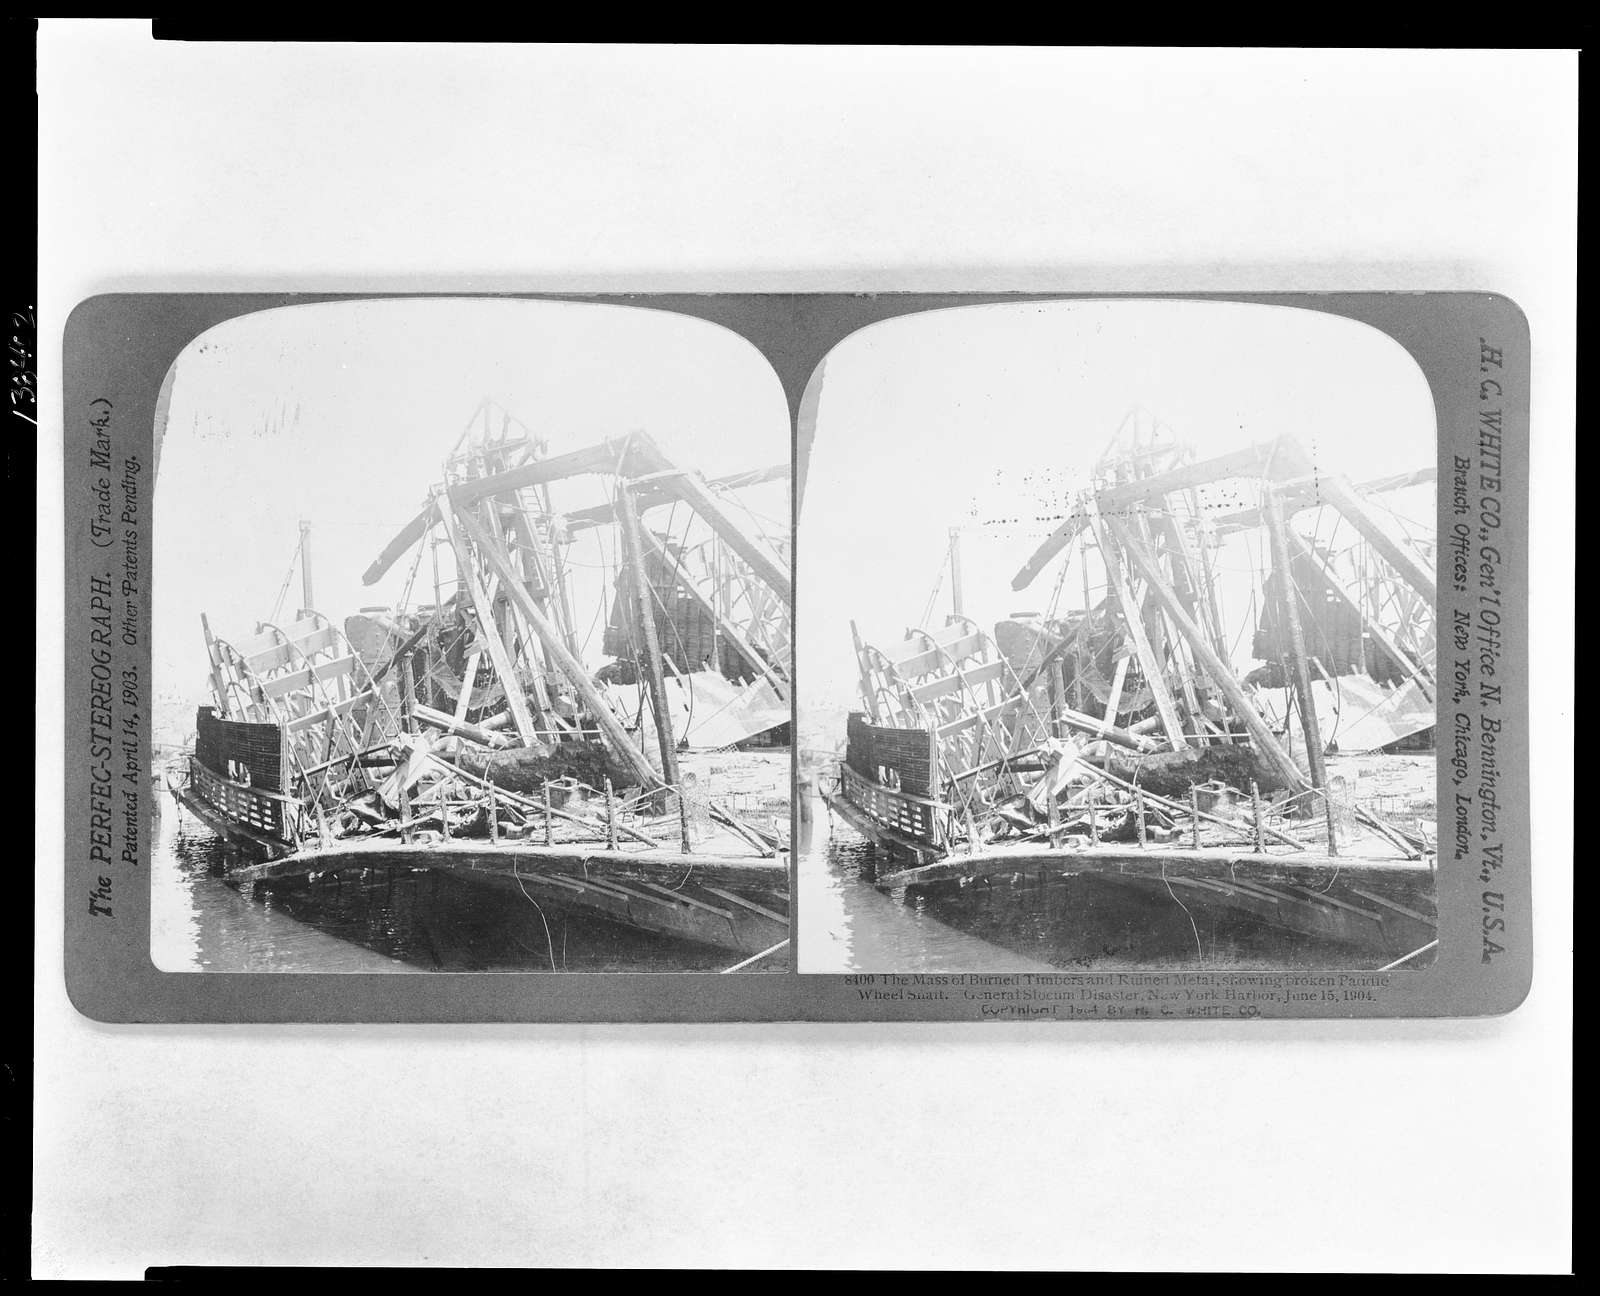 The mass of burned timbers and ruined metal, showing broken paddle wheels s[h]a[f]t. General Slocum Disaster, New York Harbor, June 15, 1904